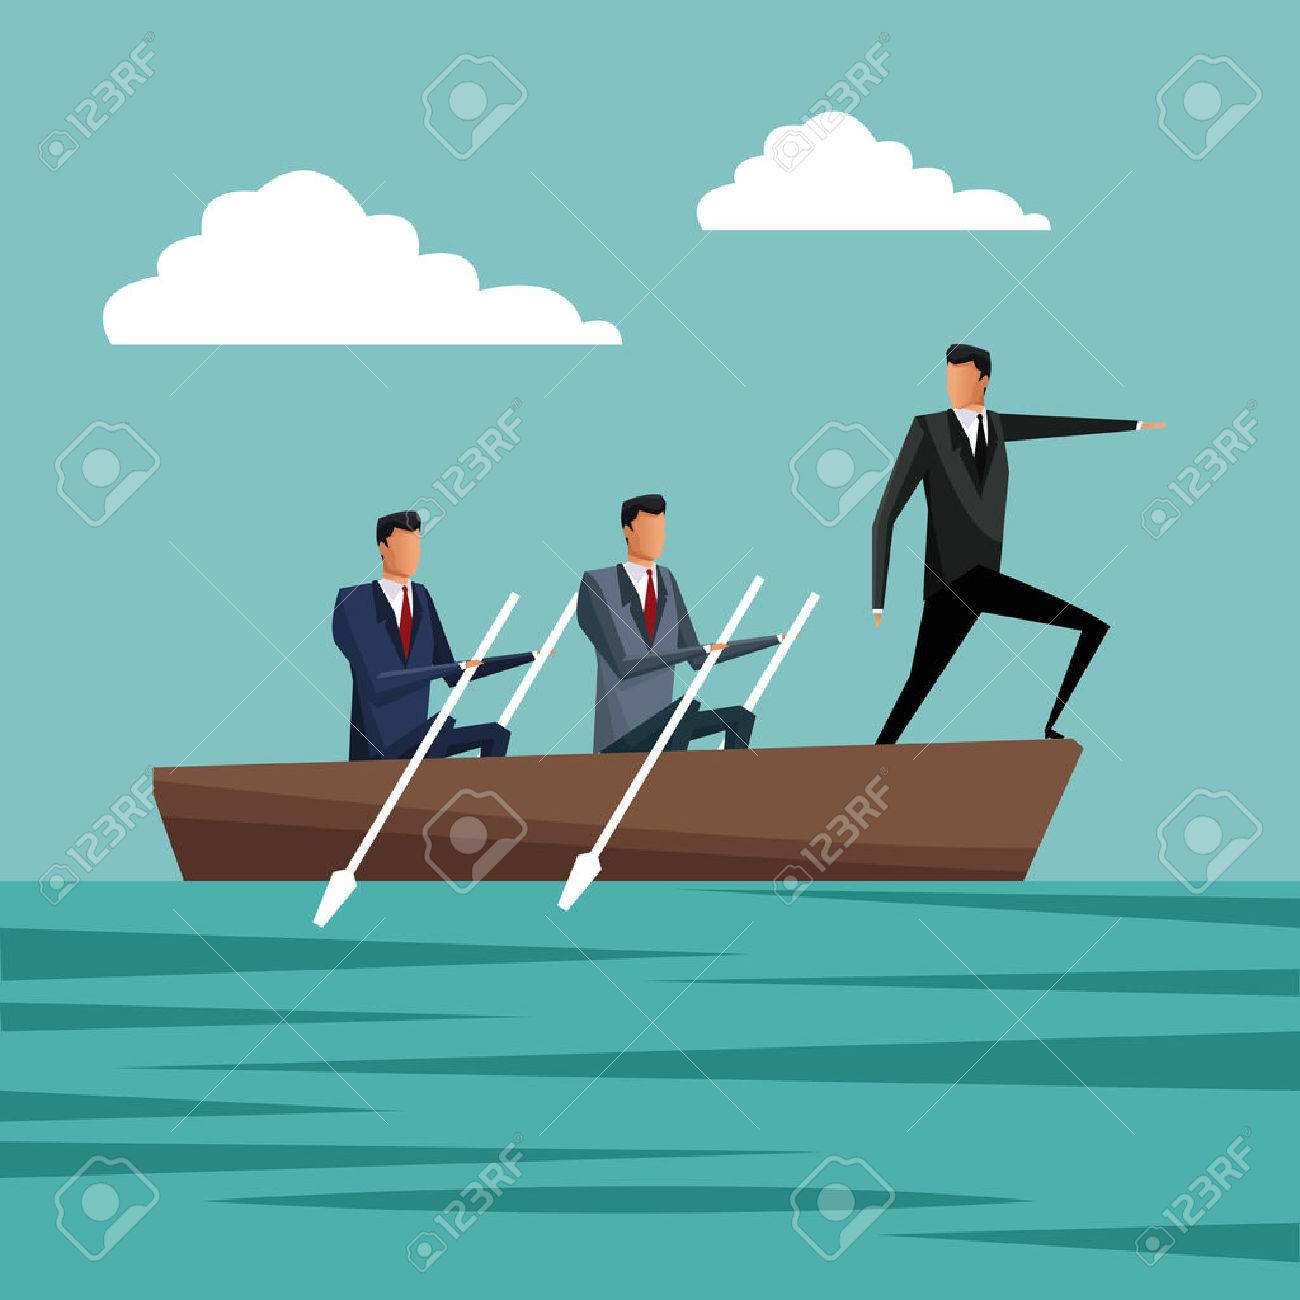 business people paddling team work manager growth vector illustration eps 10 - 69497073